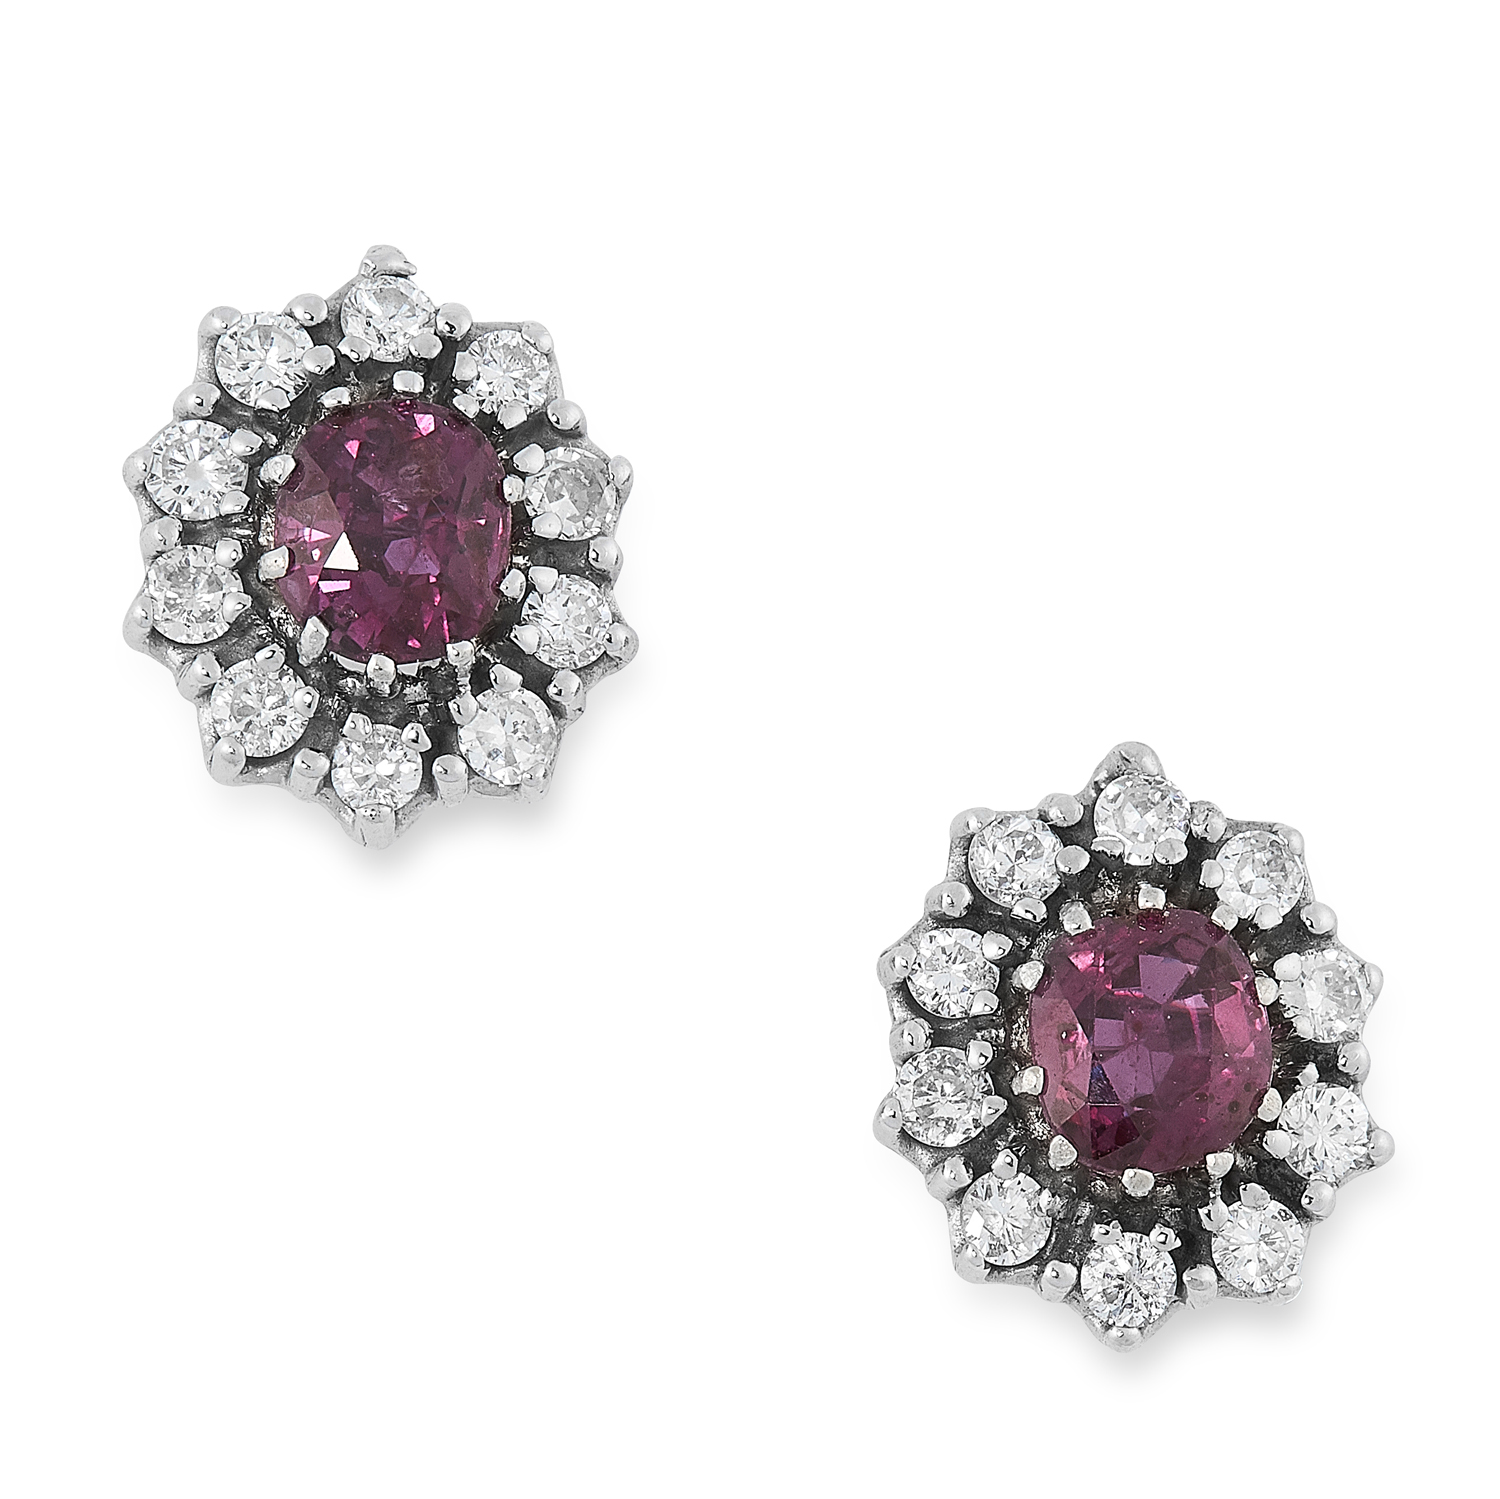 A PAIR OF RUBY AND DIAMOND CLUSTER STUD EARRINGS each set with an oval cut ruby encircled by round